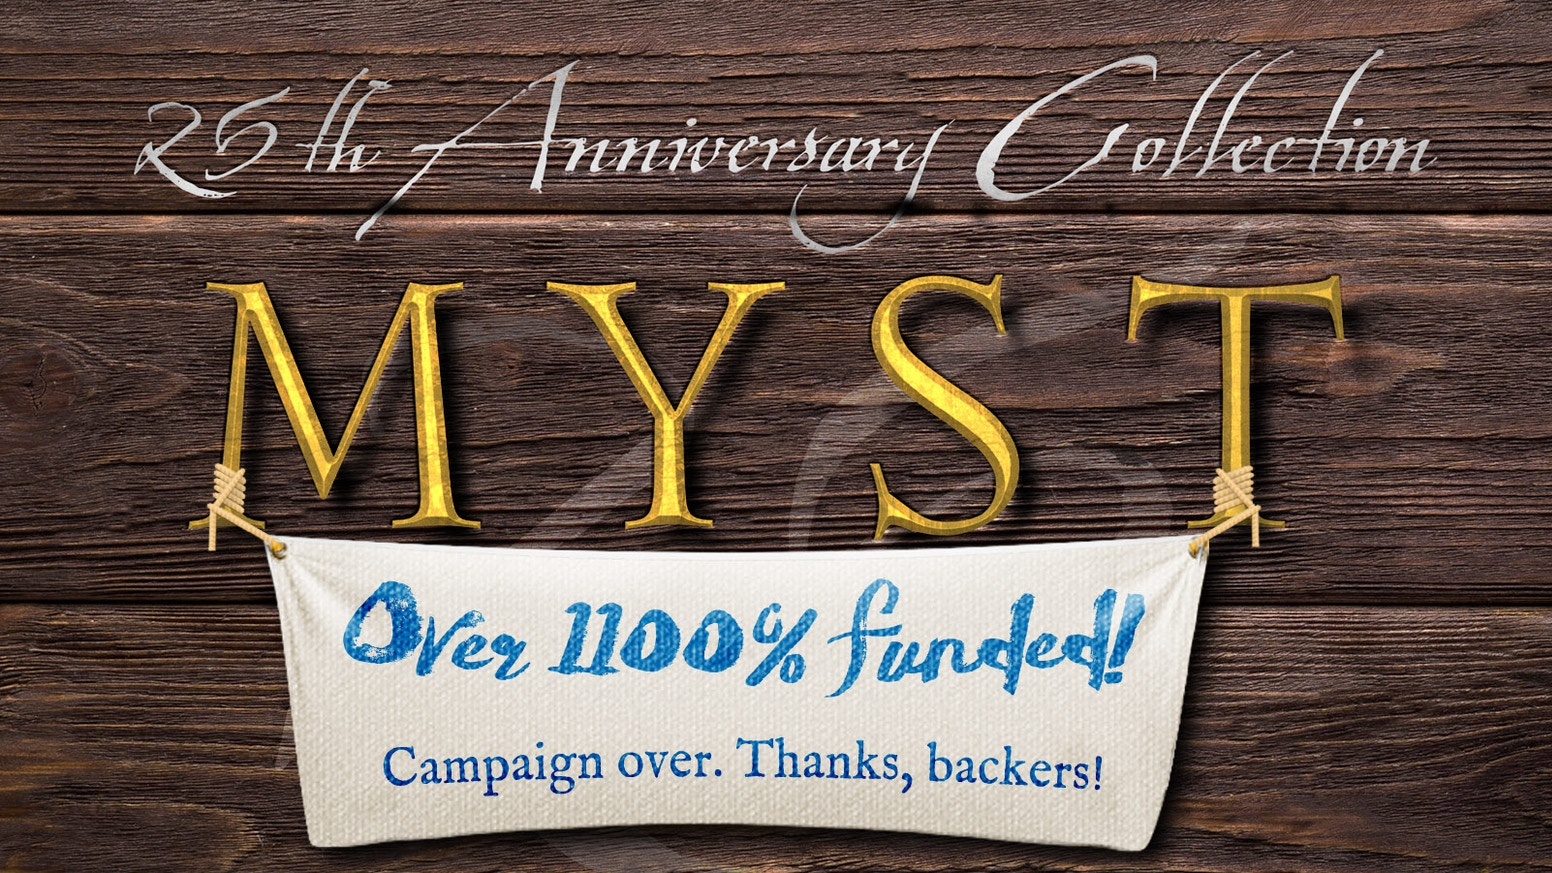 An exclusively packaged collection of all of the Myst games - now available digitally on Steam and GOG. This project has ended. Visit store.cyan.com for more memorabilia!